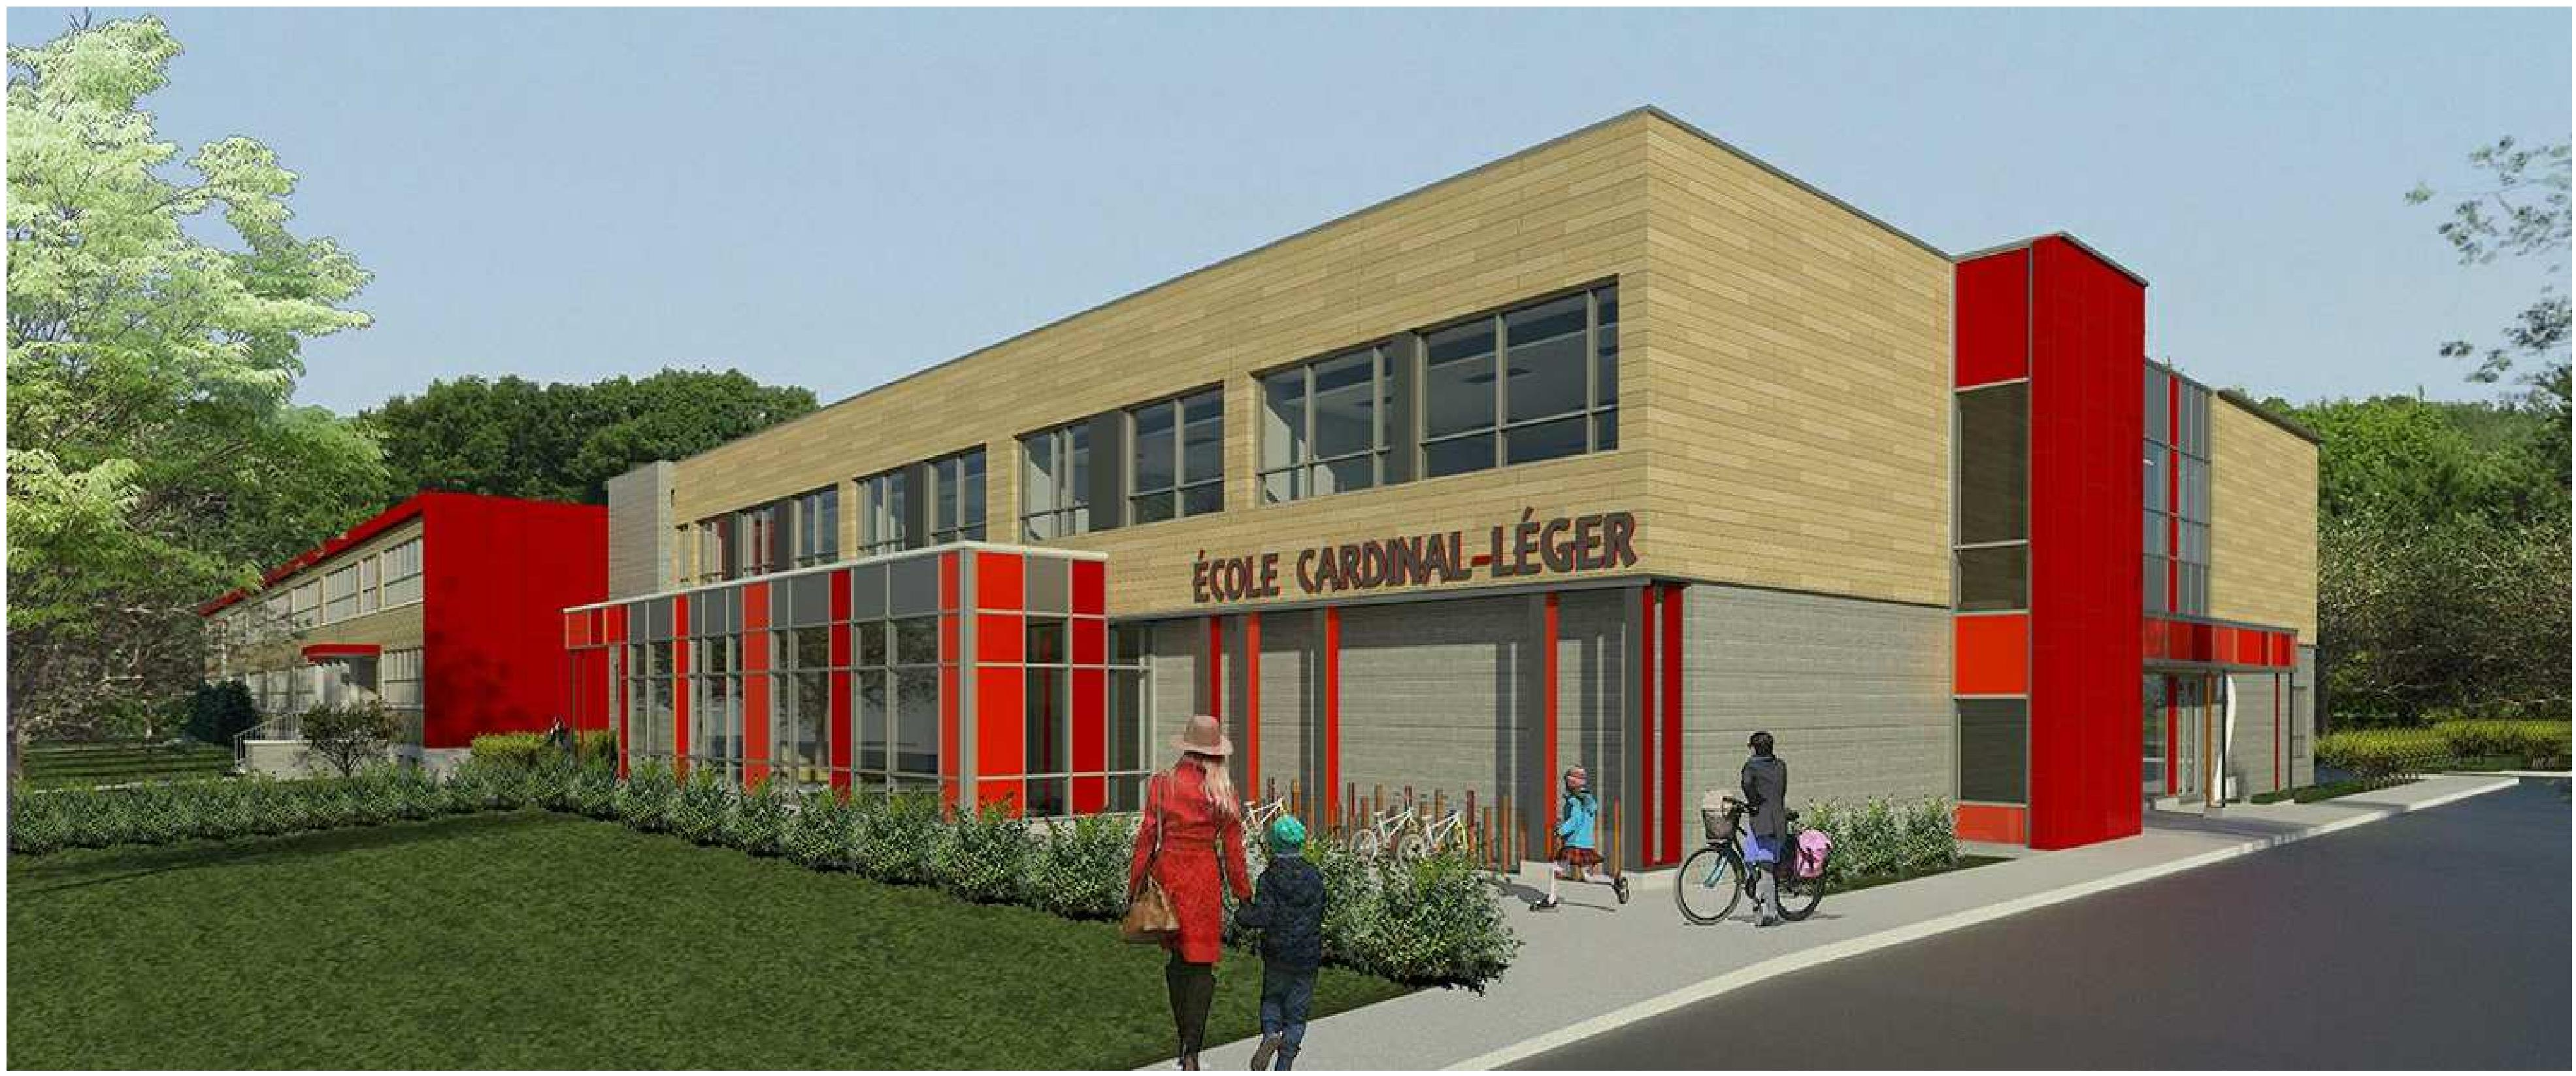 Plumbing and Geothermal Energy Contract for the Cardinal-Léger School